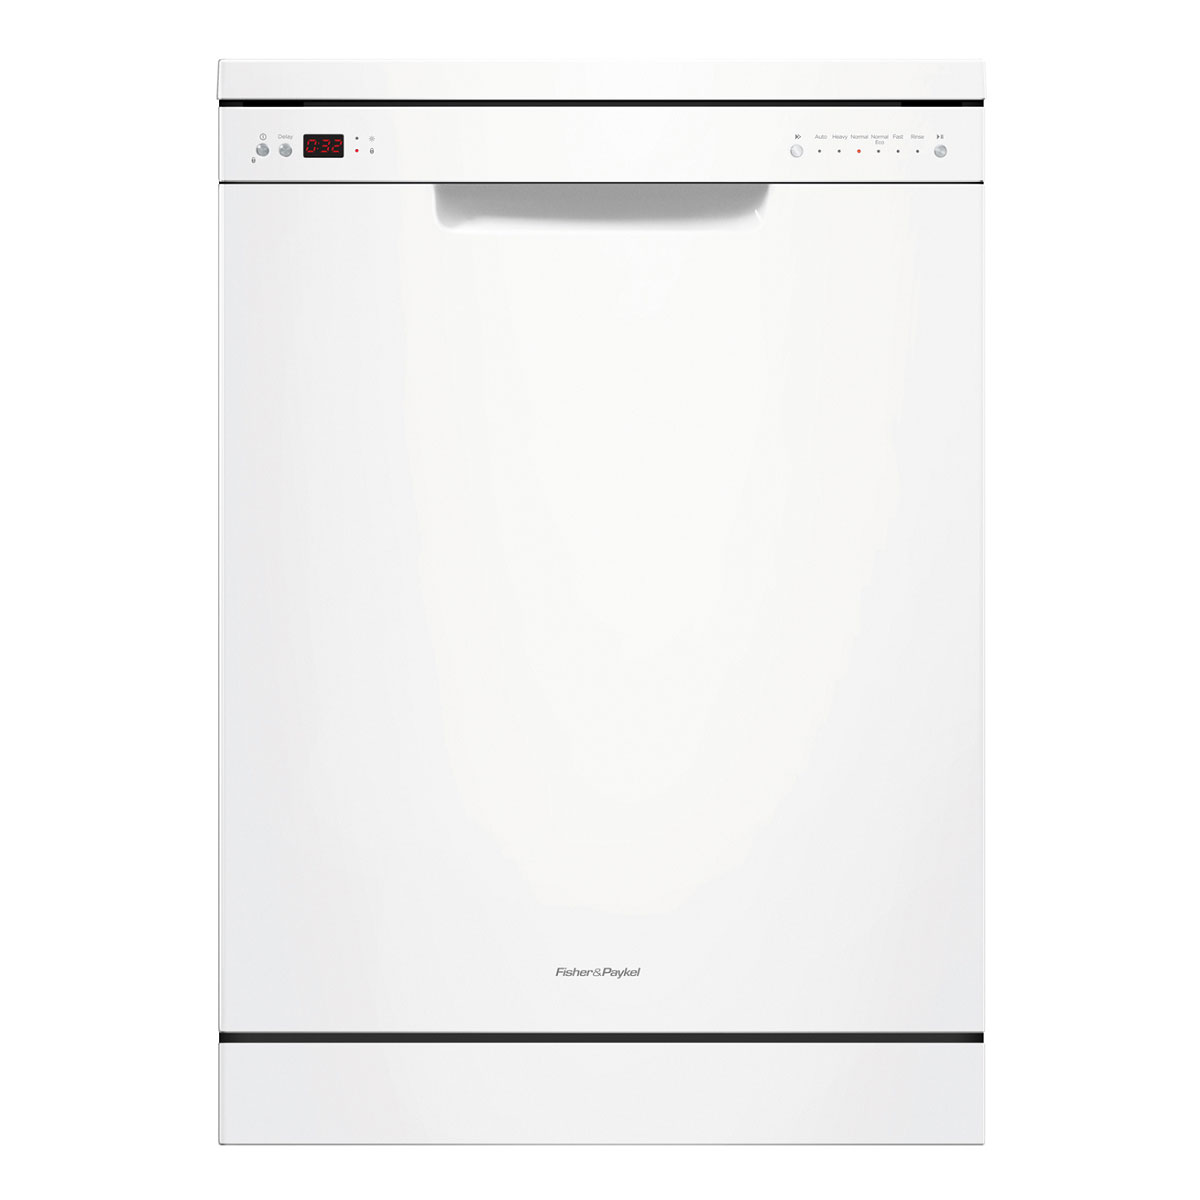 Fisher & Paykel Freestanding Dishwasher DW60CHPW1